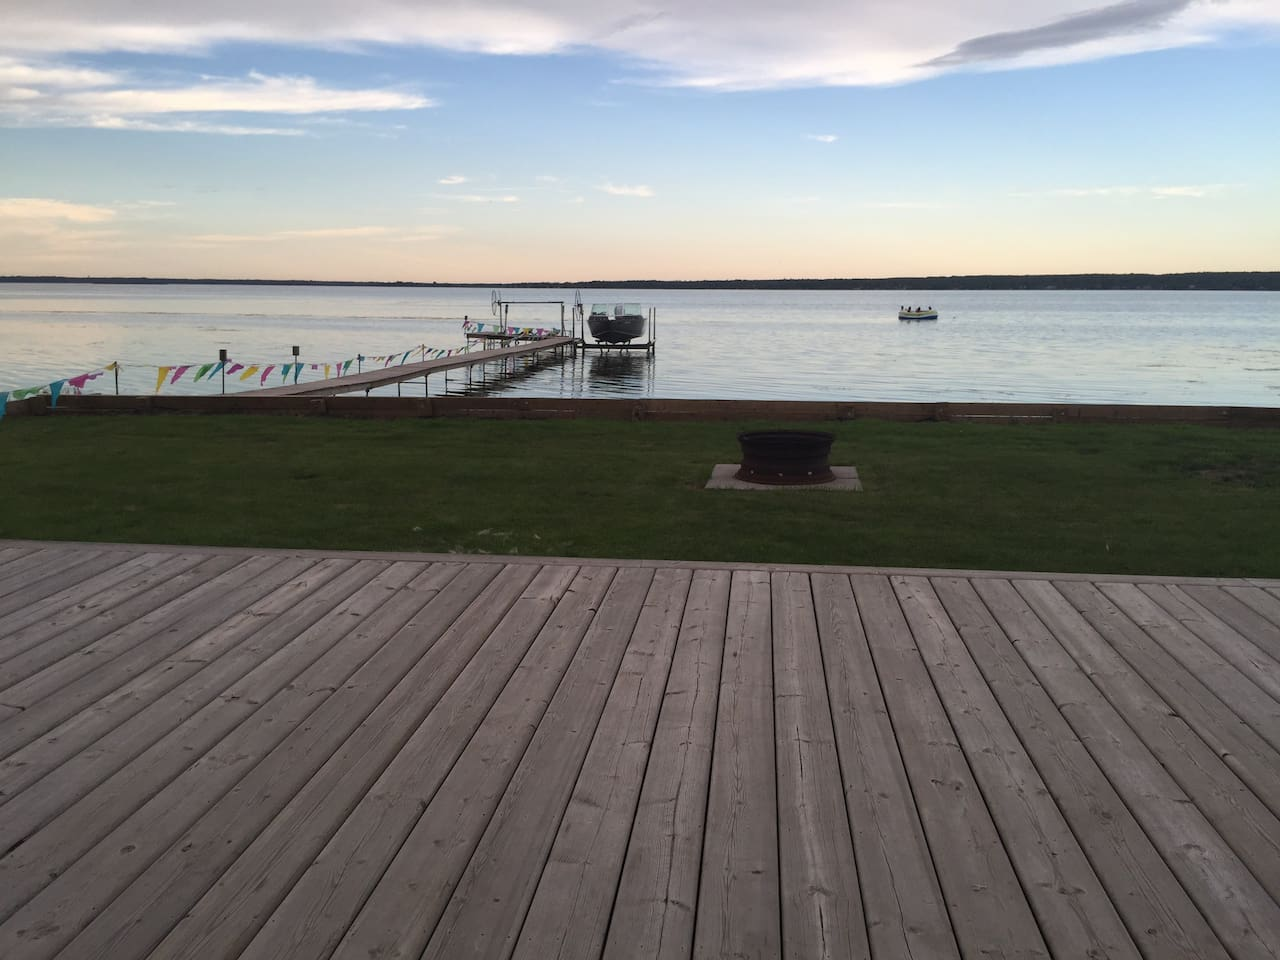 This photo shows a view from our deck overlooking the lake.